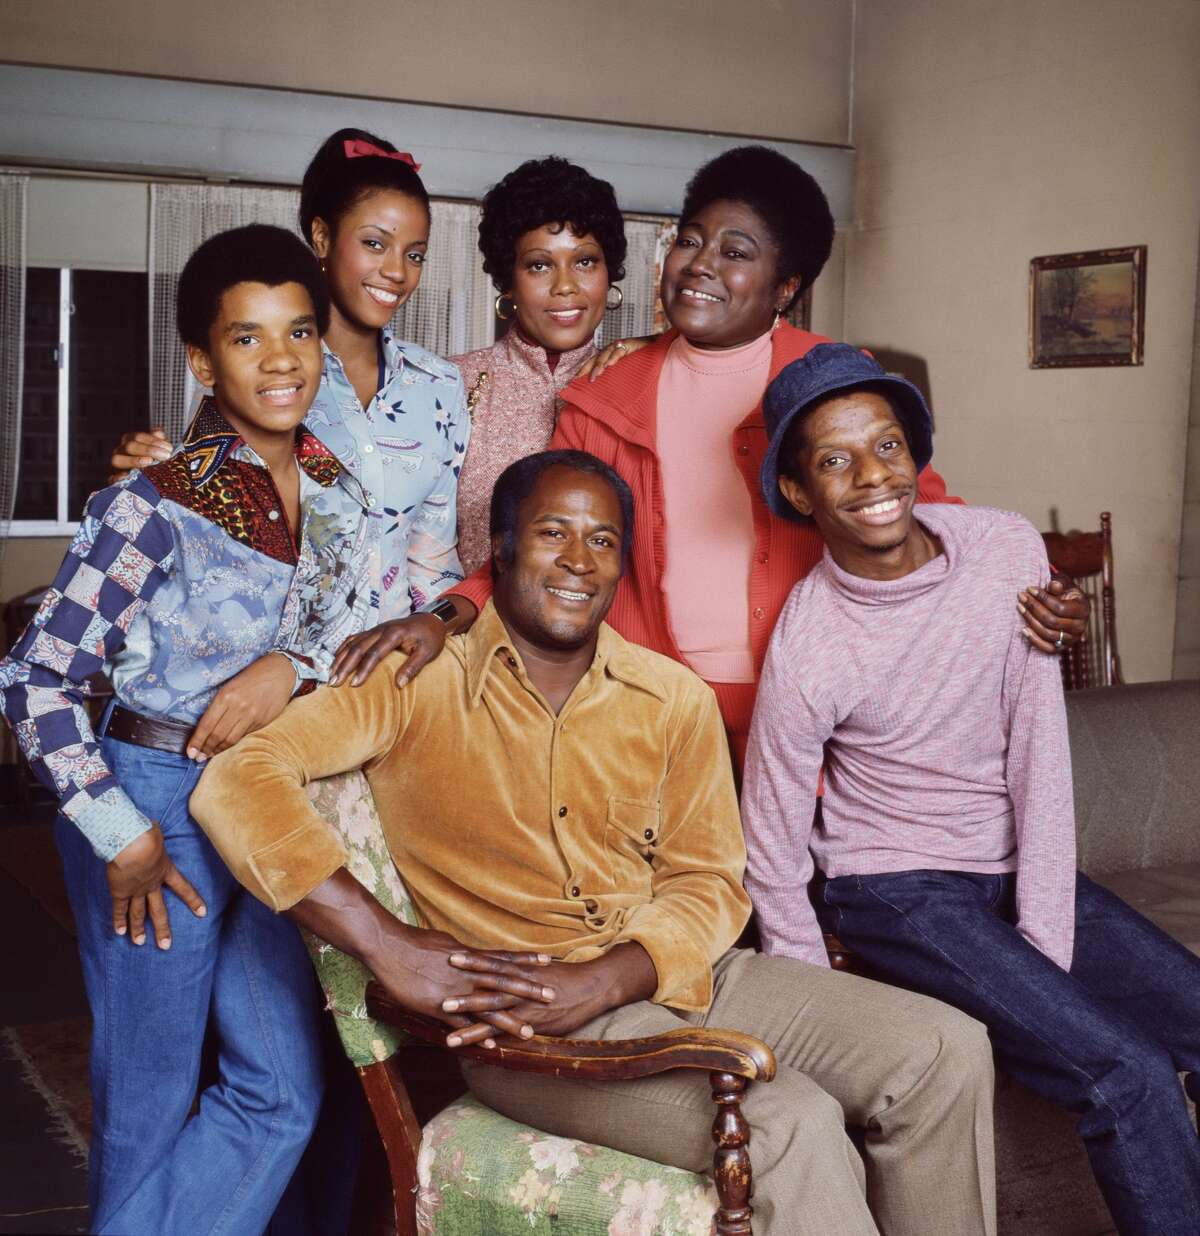 (Front row) John Amos and Jimmie Walker; (back row) Ralph Carter, BernNadette Stanis, Ja'net DuBois and Esther Rolle,